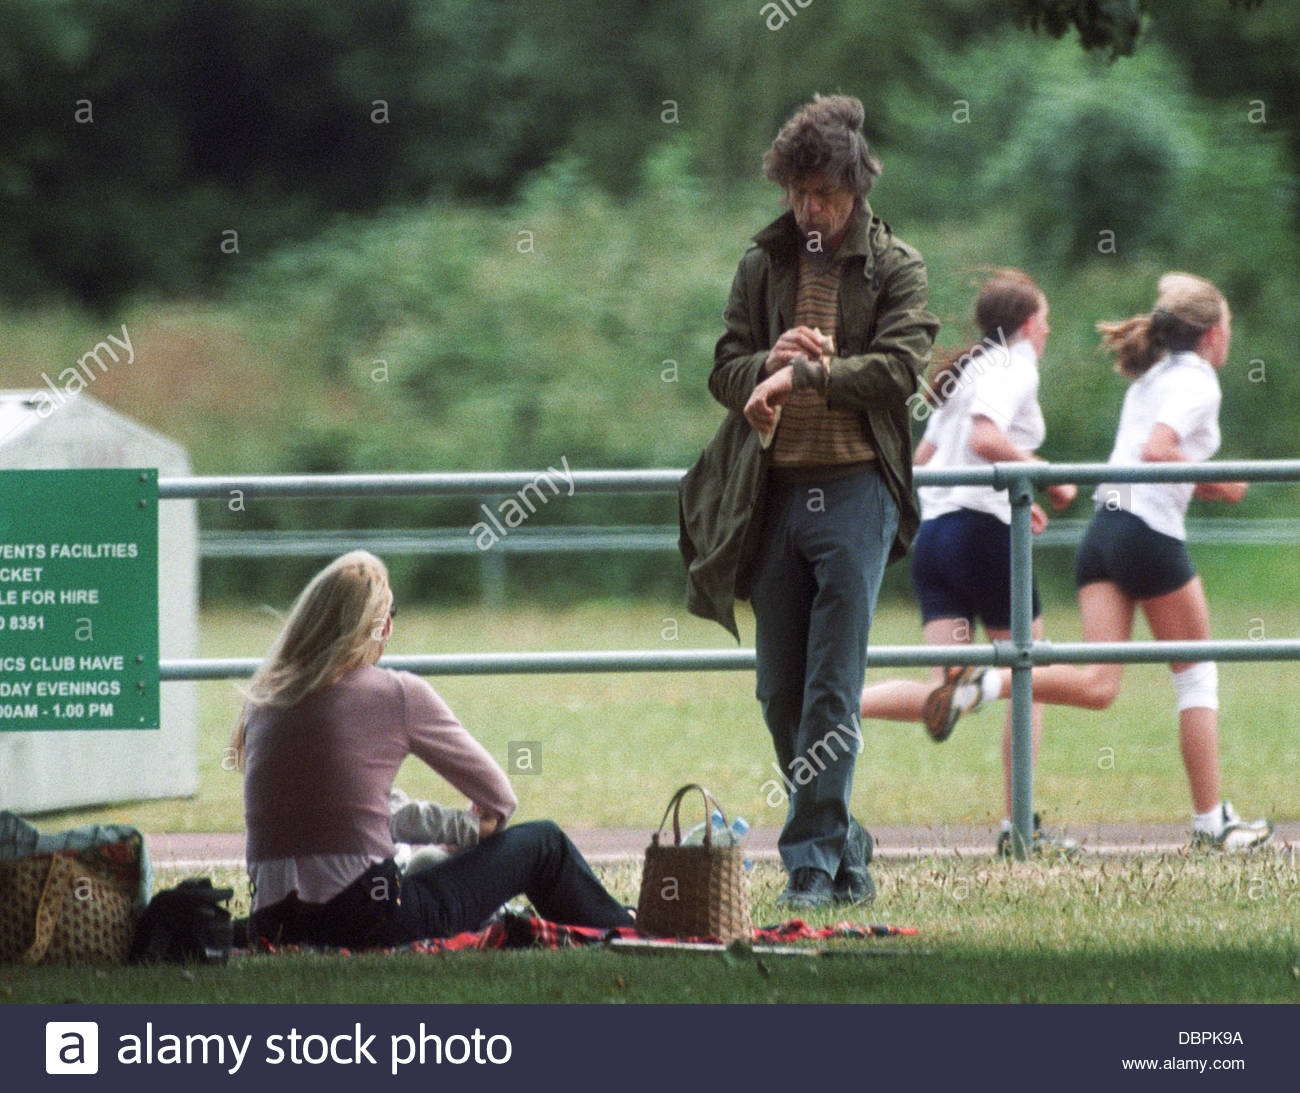 Mick Jagger and Jerry Hall at daughter Georgia May's school sports day, Richmond, London, Britain June 1998. - Stock Image